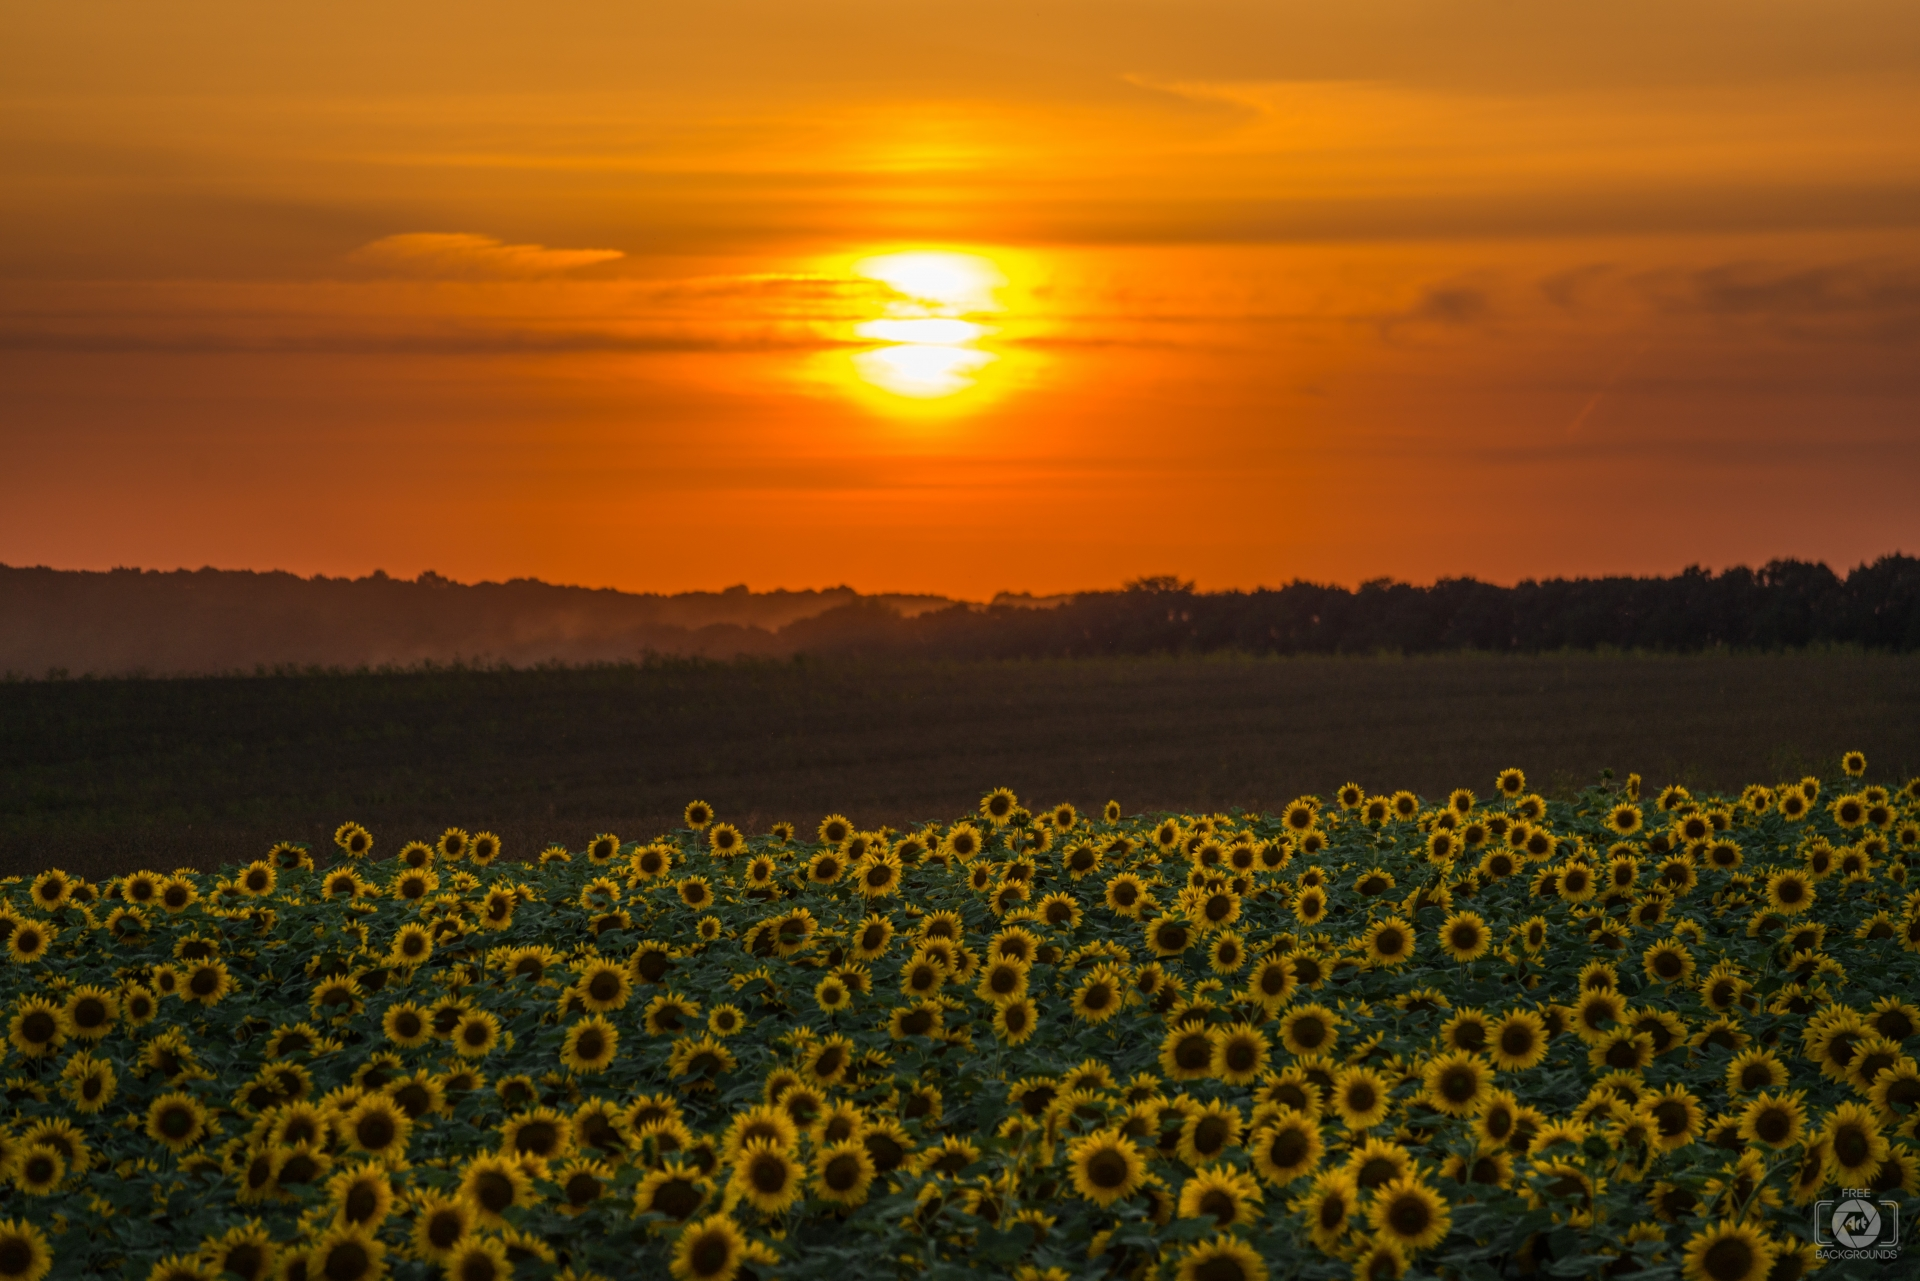 Beautiful Sunset Over Sunflower Field - High-quality Free Backgrounds